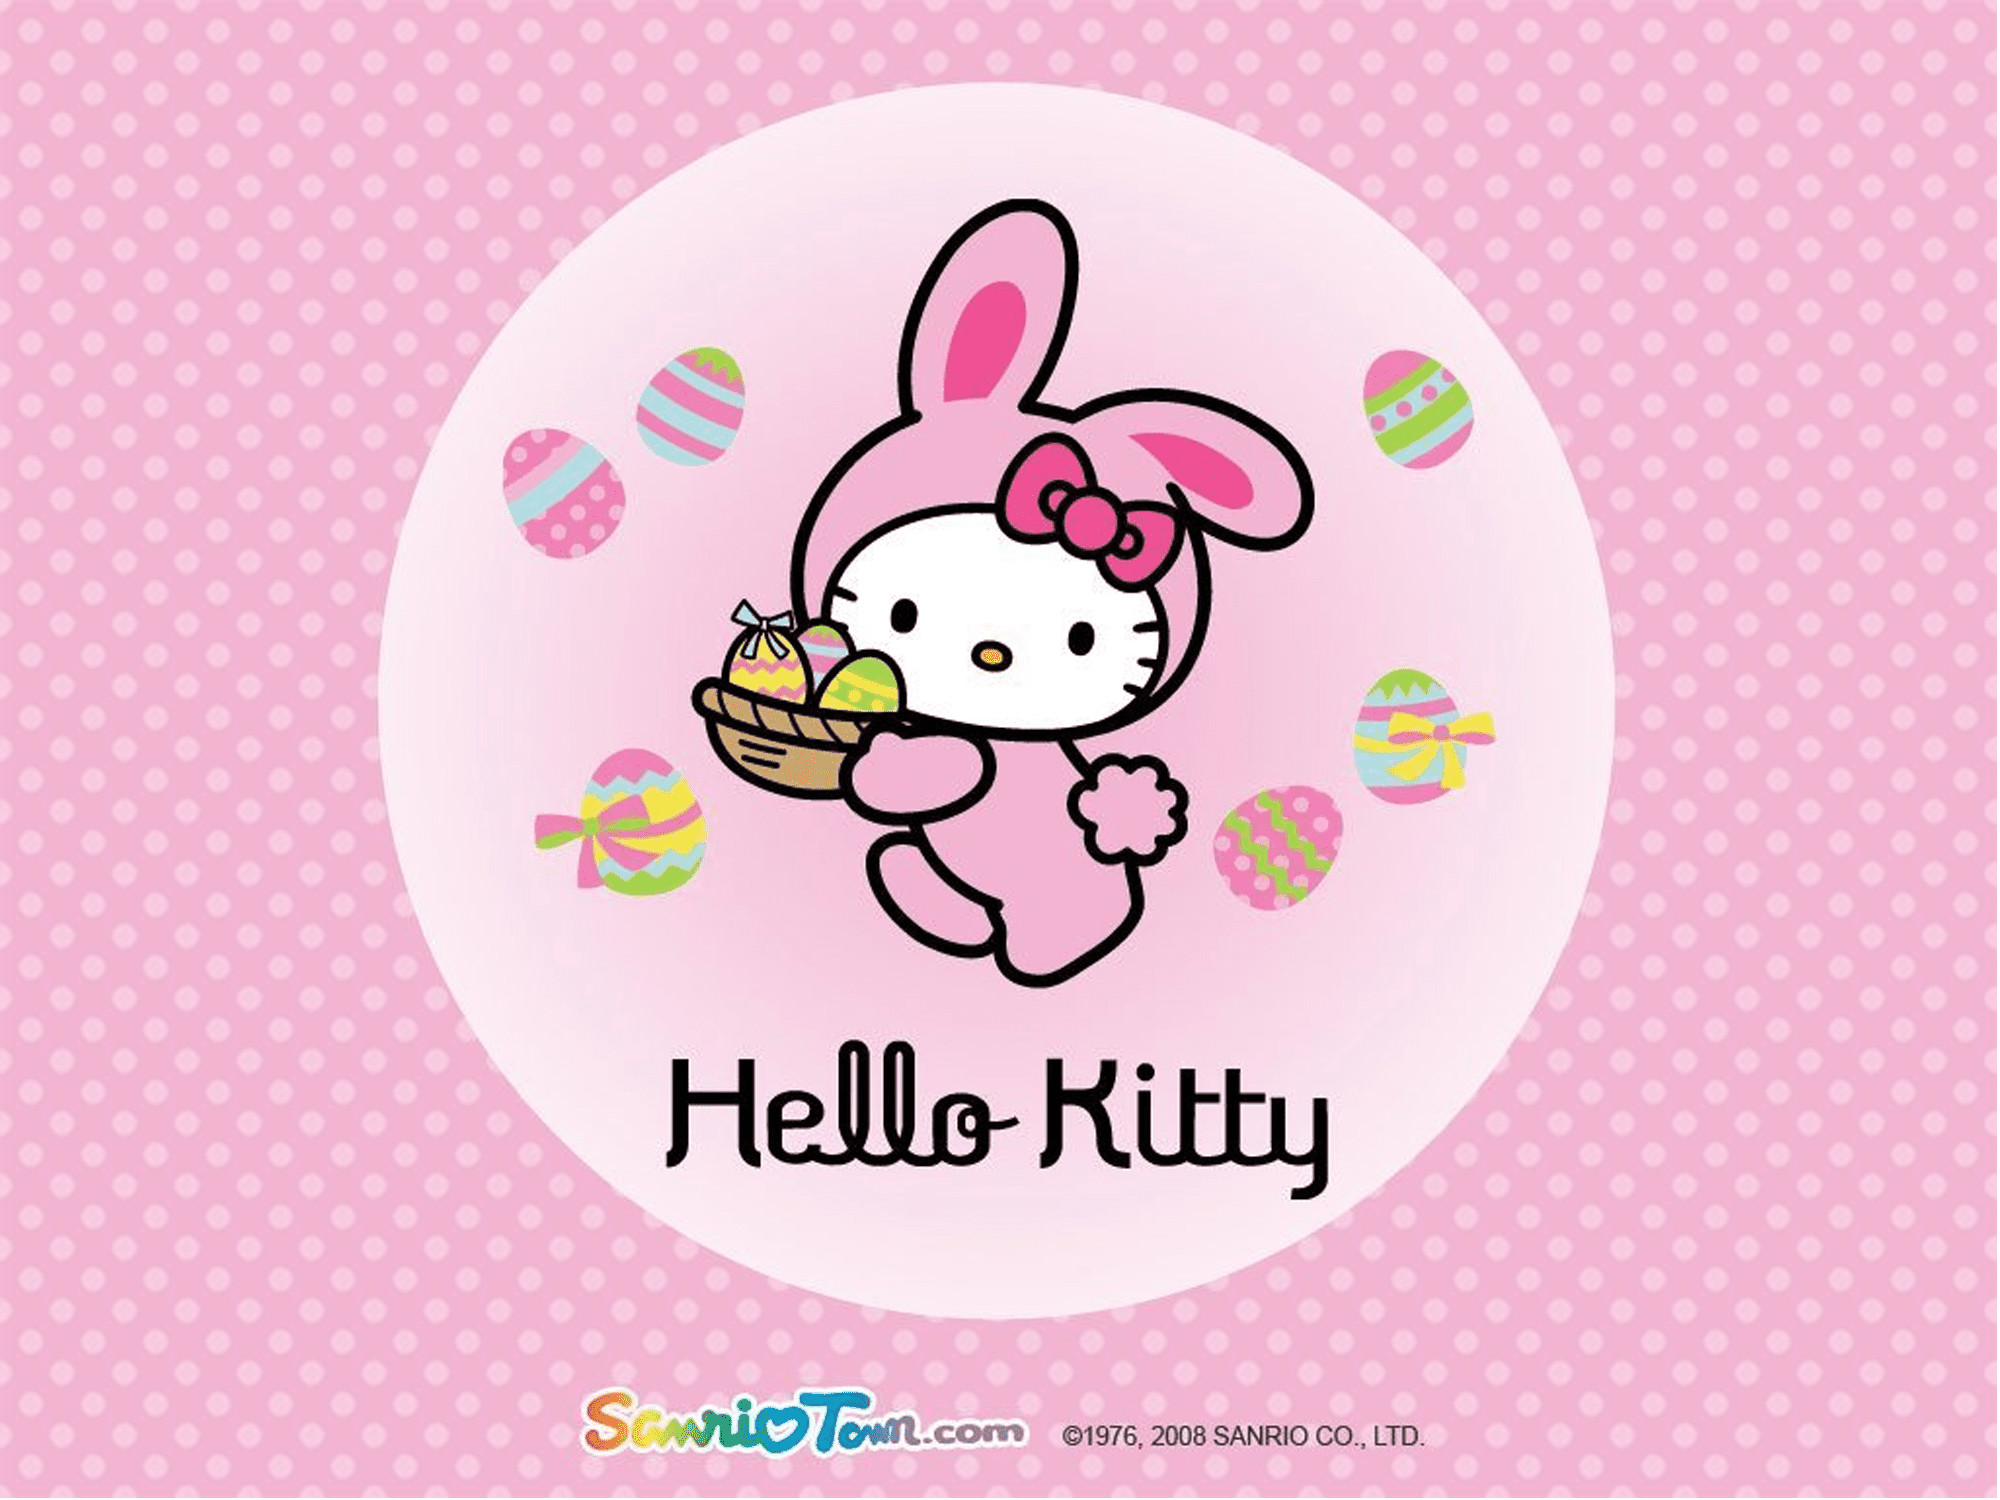 Beautiful Wallpaper Halloween Pastel - 875838-best-hello-kitty-winter-wallpaper-2000x1500-lockscreen  Pictures_363314.jpg